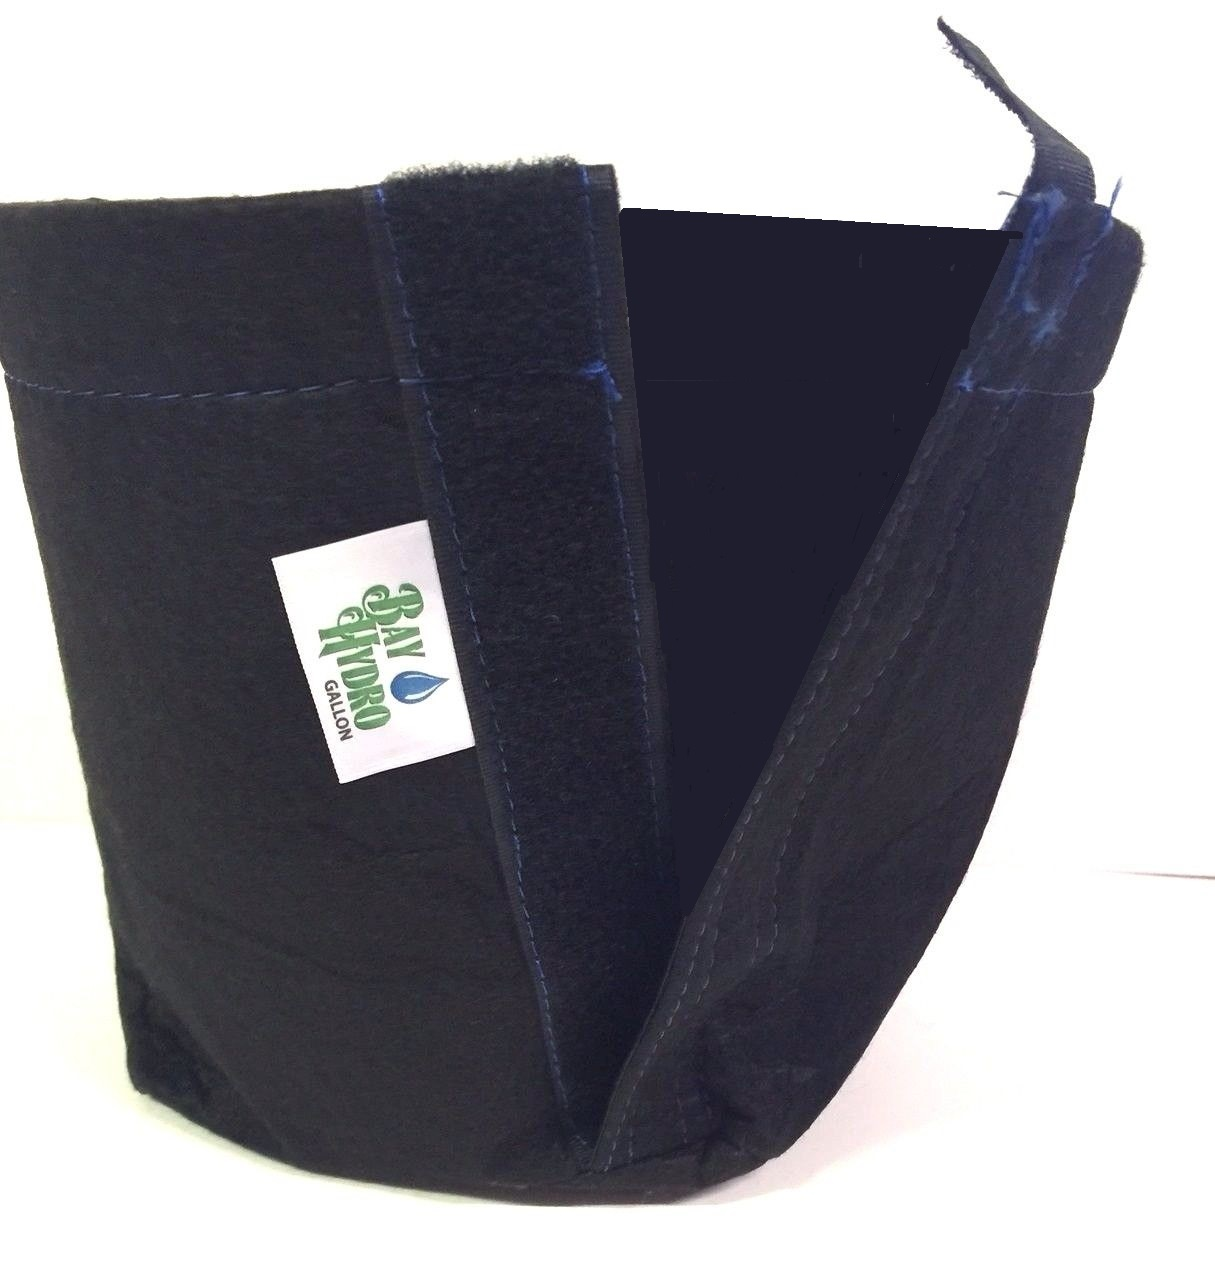 Bay Hydro 10 Gallon Velcro Trans-Planter Fabric Pots